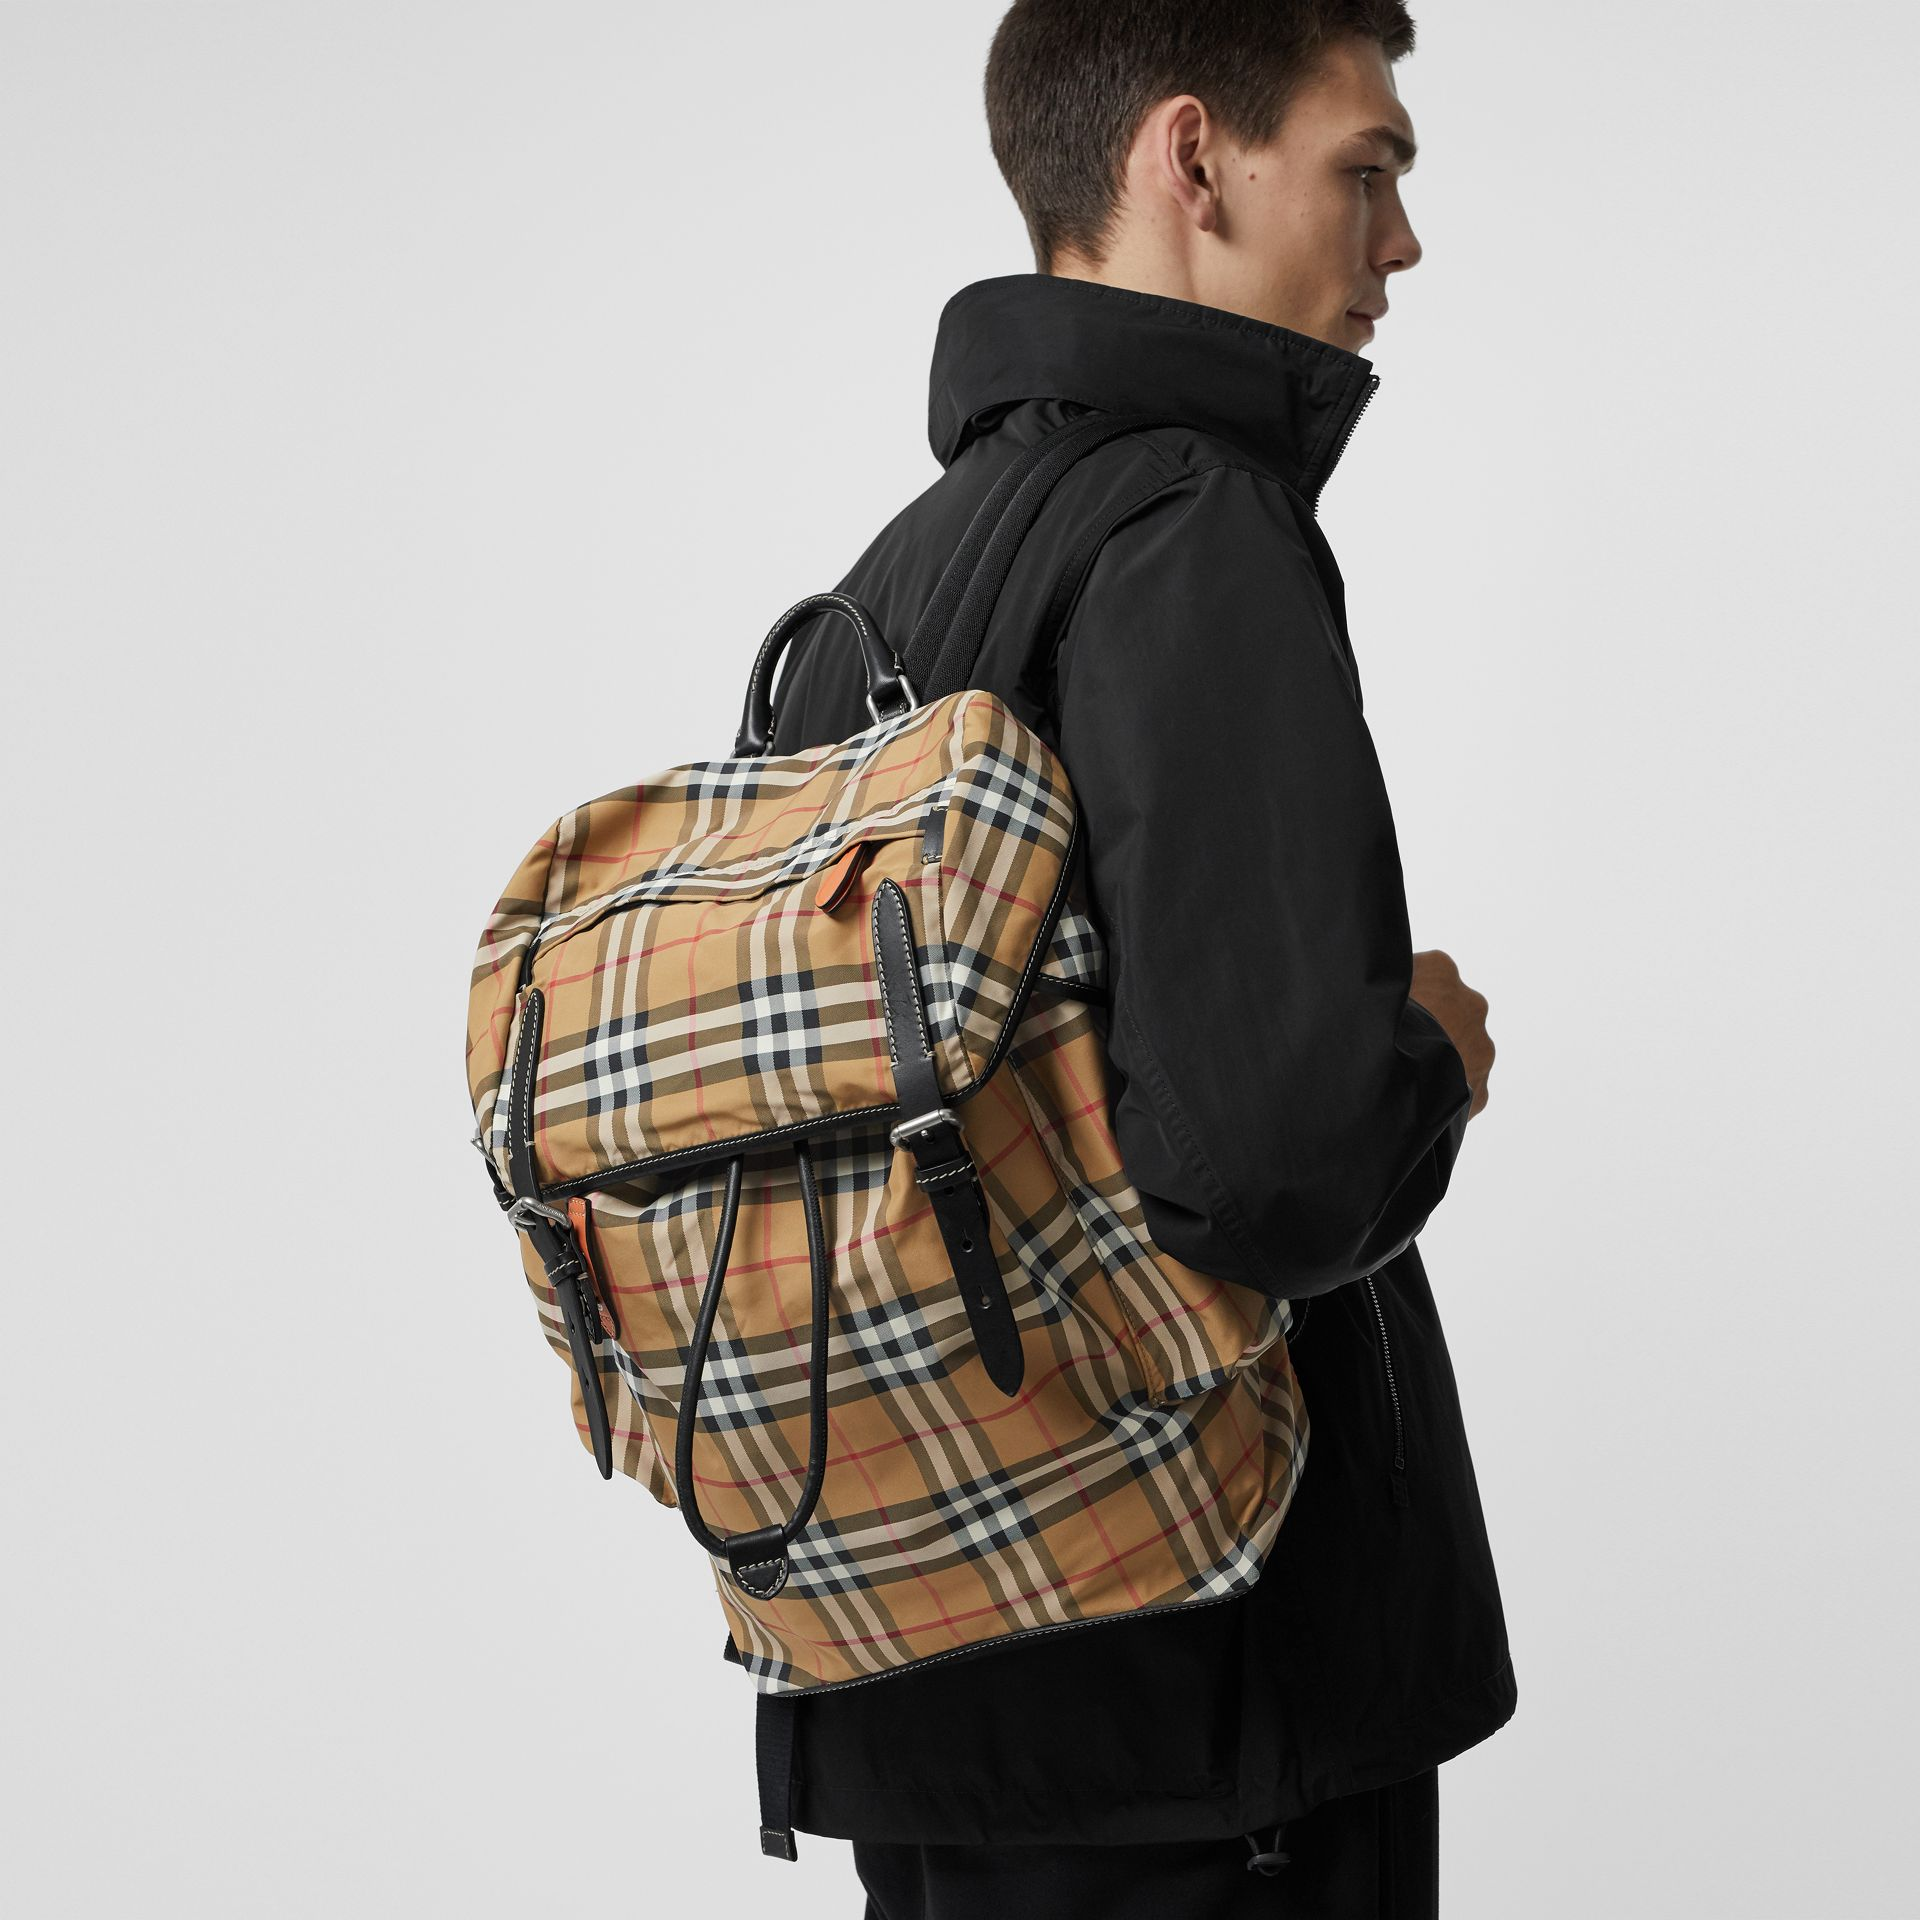 Sac à dos en cuir à motif Vintage check (Jaune Antique) - Homme | Burberry - photo de la galerie 3